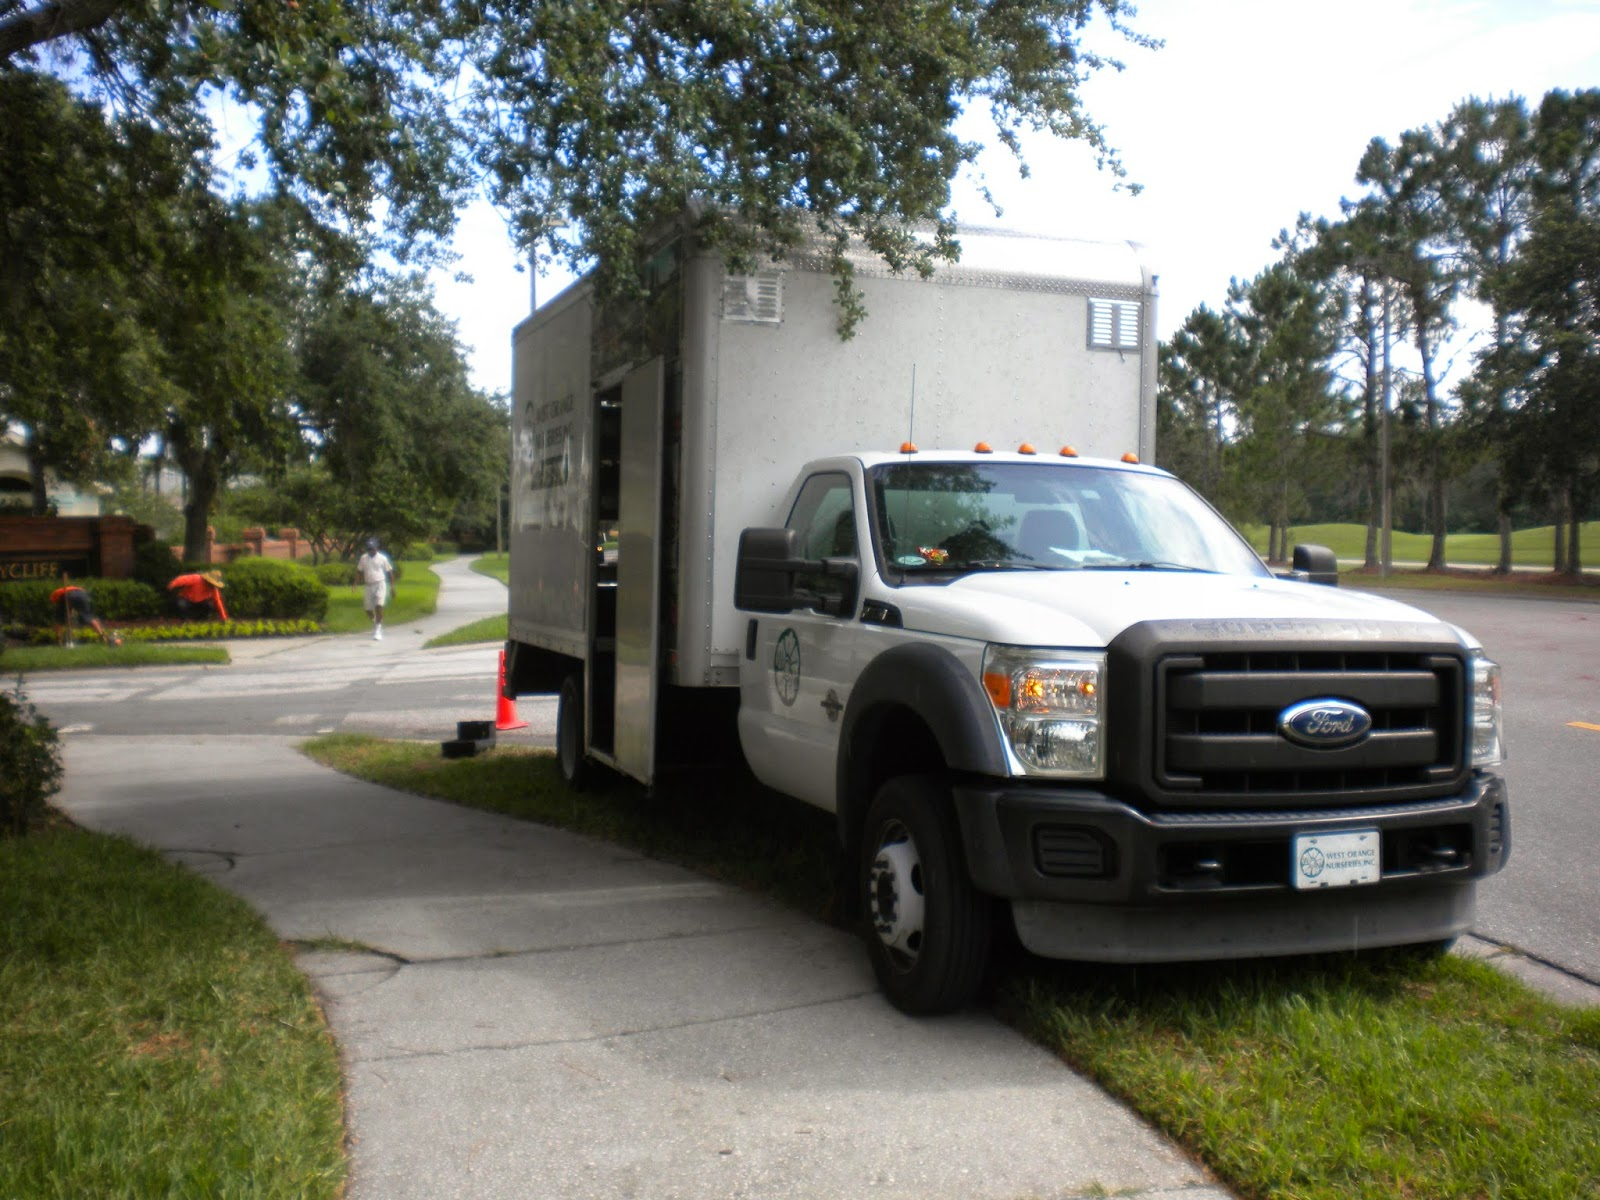 Commercial Truck Success Blog: Special Landscaping Truck